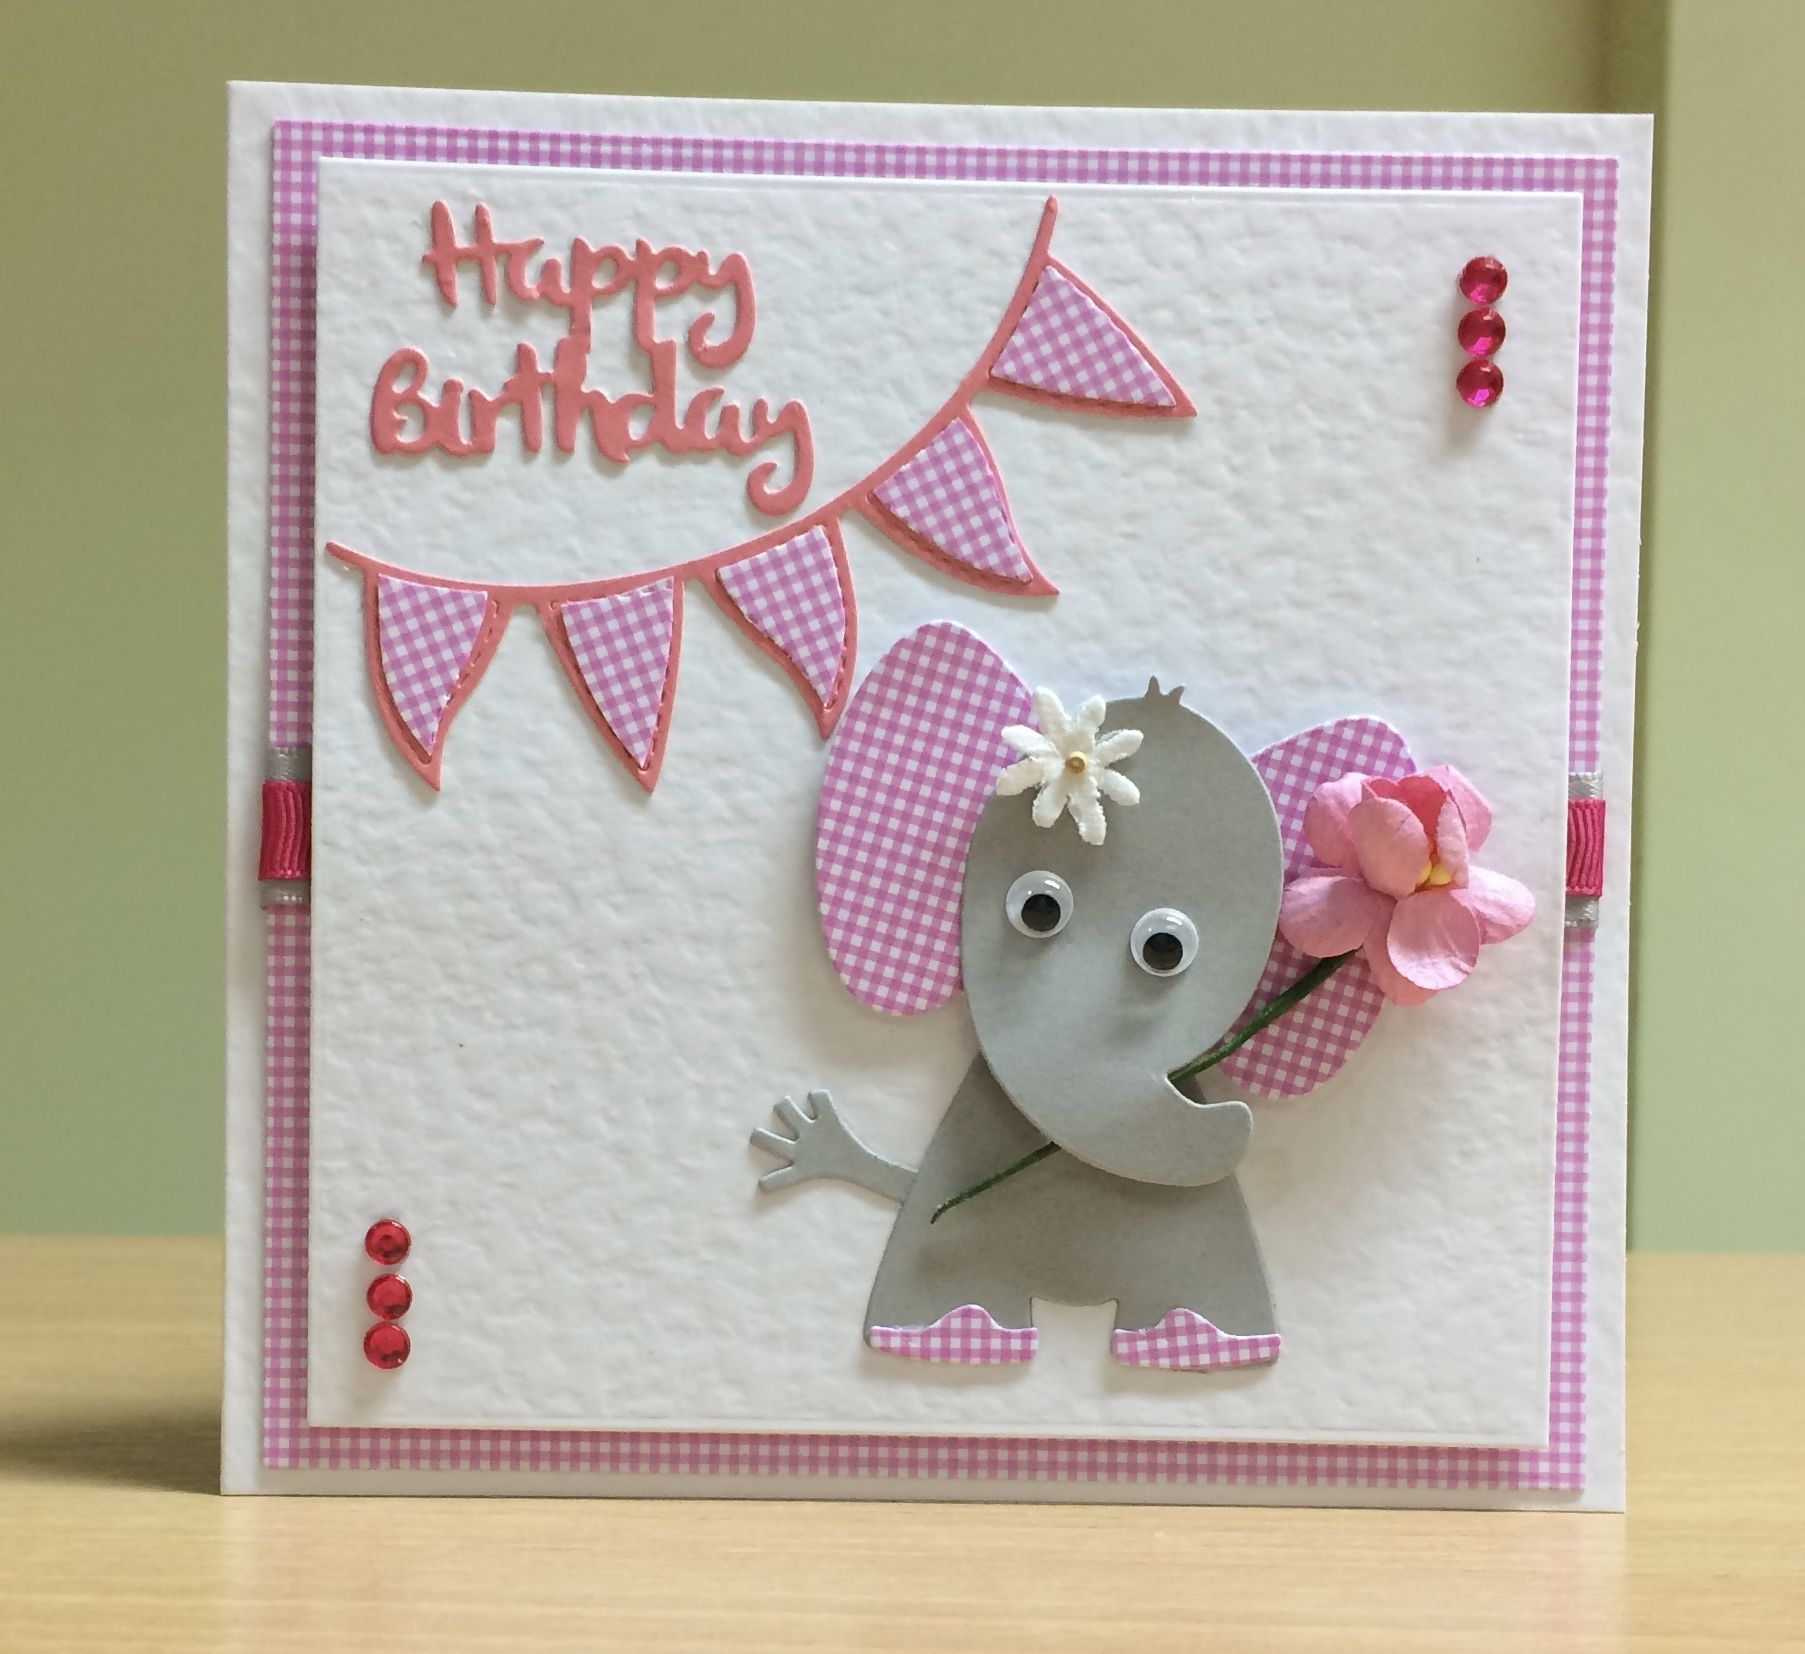 Birthday Card Handmade Marianne Elephant Die For More Of My Cards Please Visit Craftycardstudio On Etsy Cool Birthday Cards Cards Handmade Birthday Cards